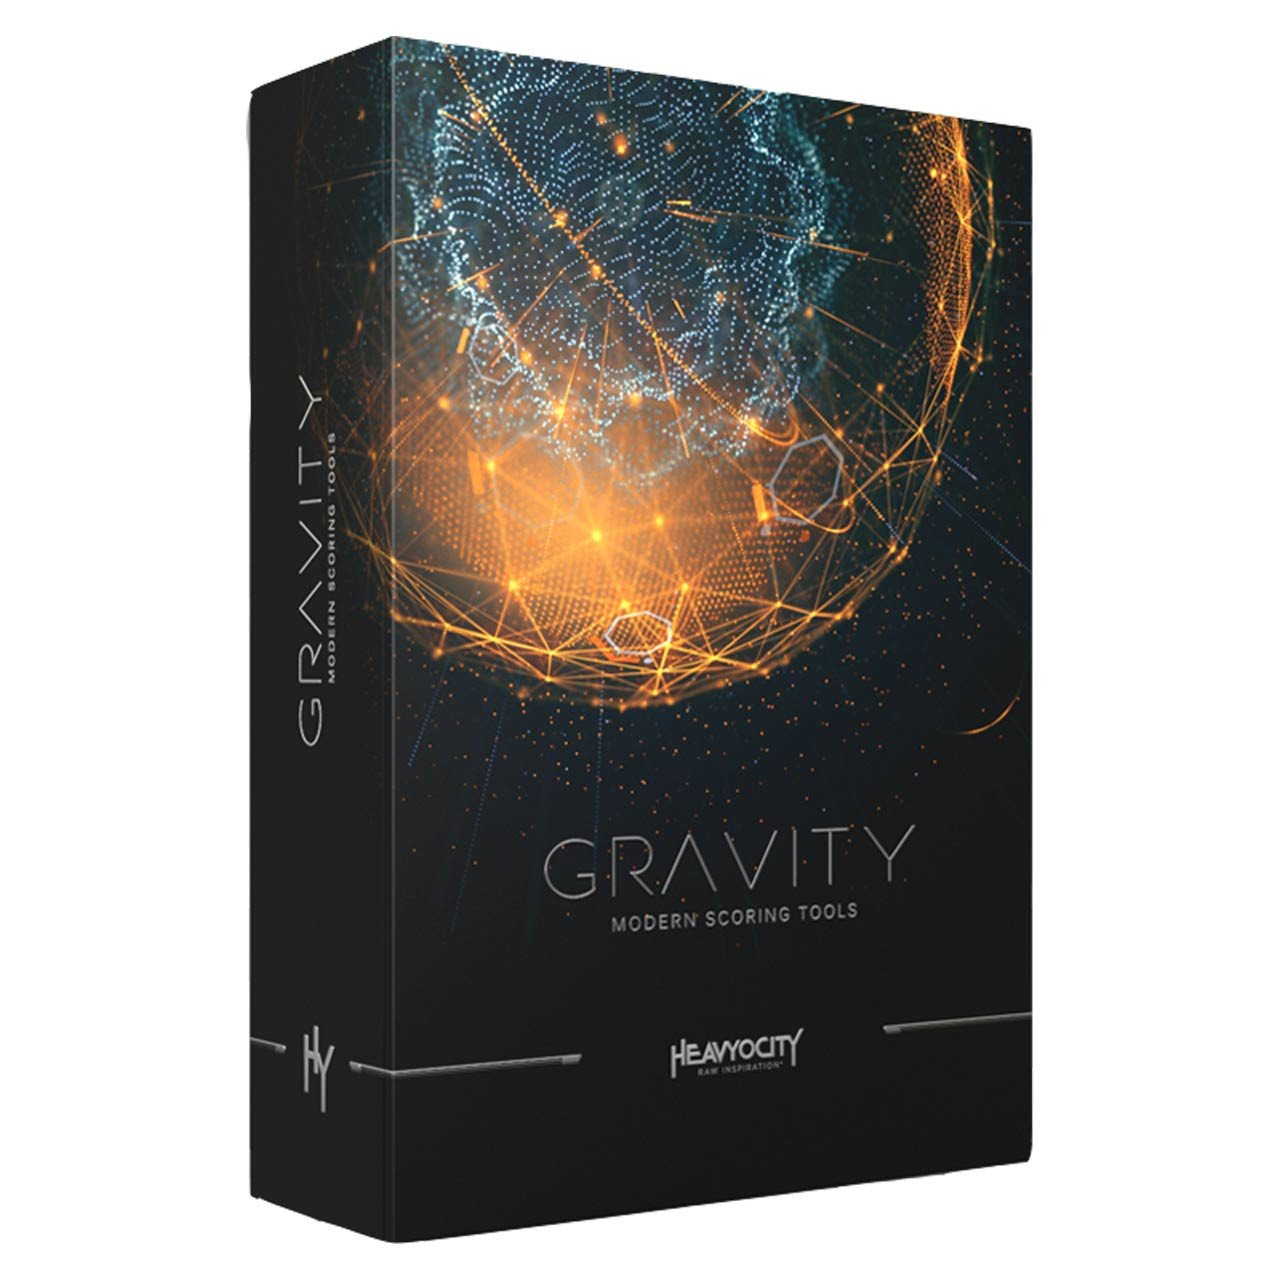 Software Instruments - Heavyocity GRAVITY Modern Scoring Tools